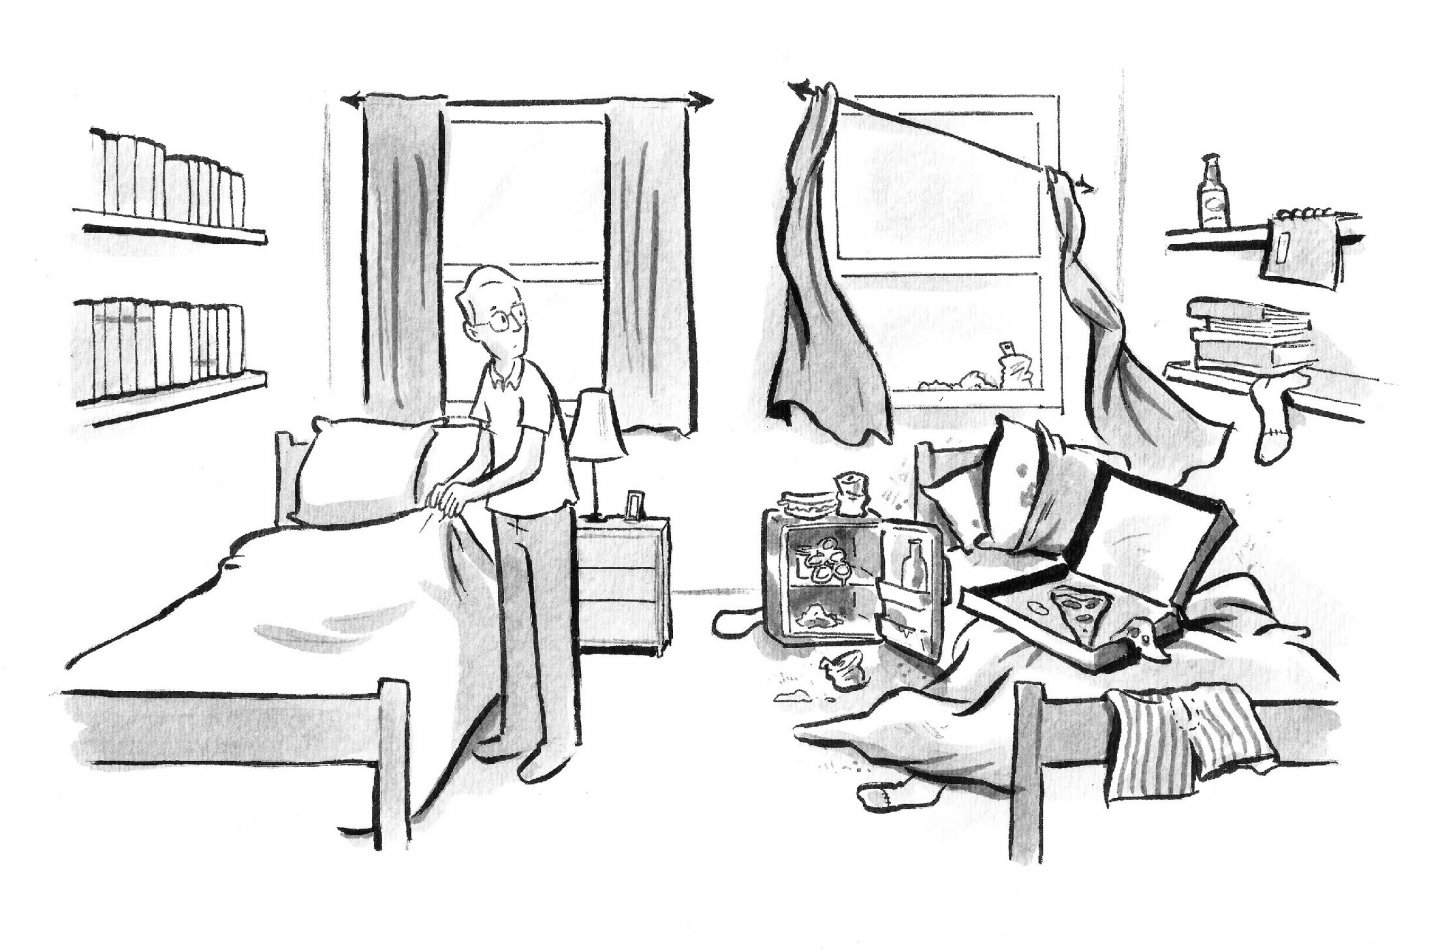 Illustration of a college dorm room